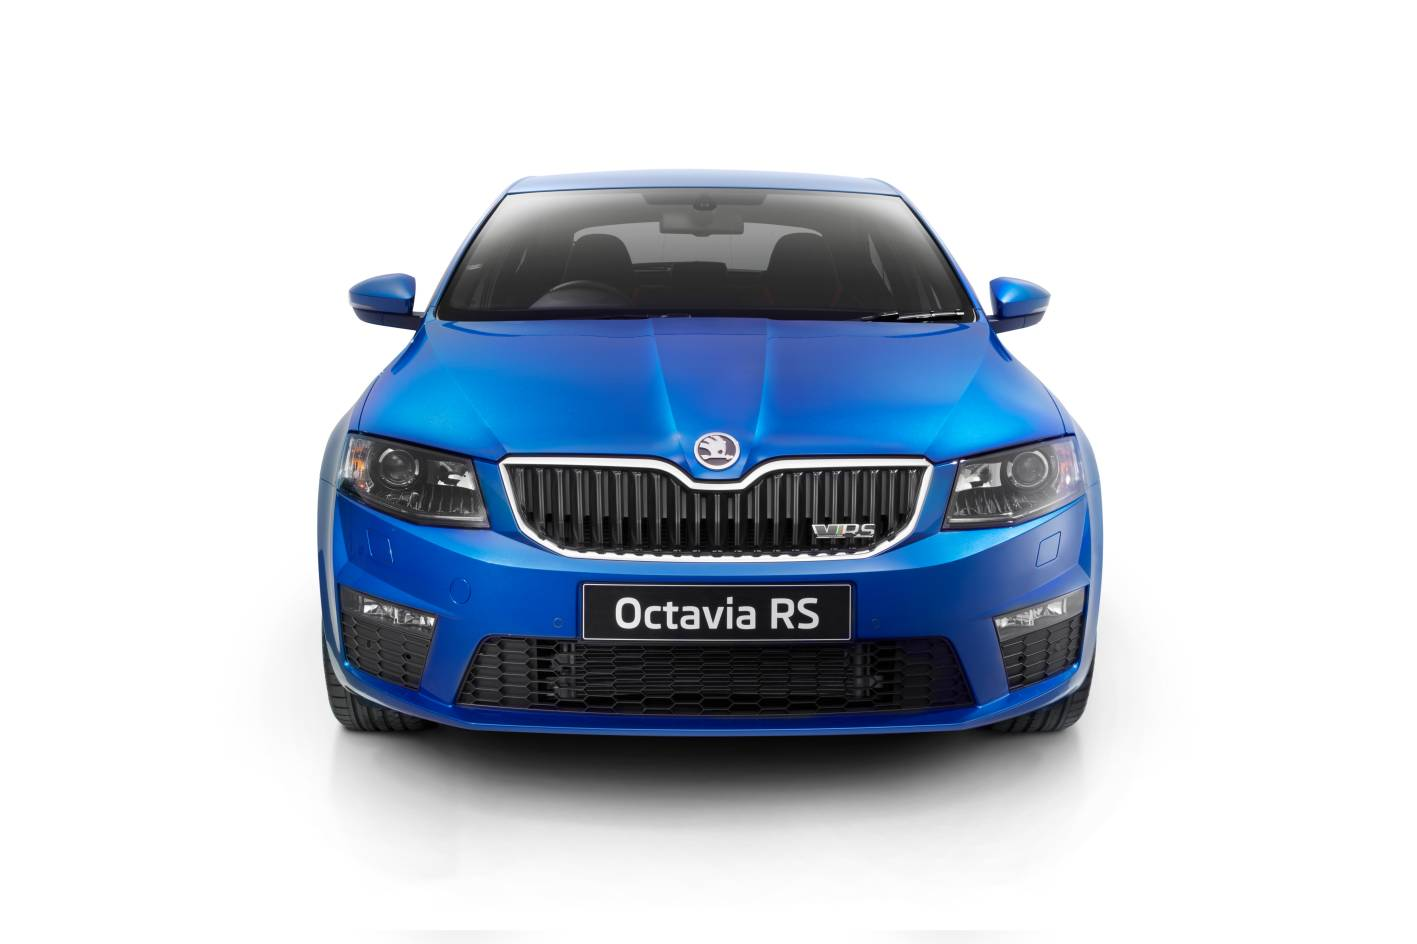 skoda cars news octavia rs pricing and specifications. Black Bedroom Furniture Sets. Home Design Ideas